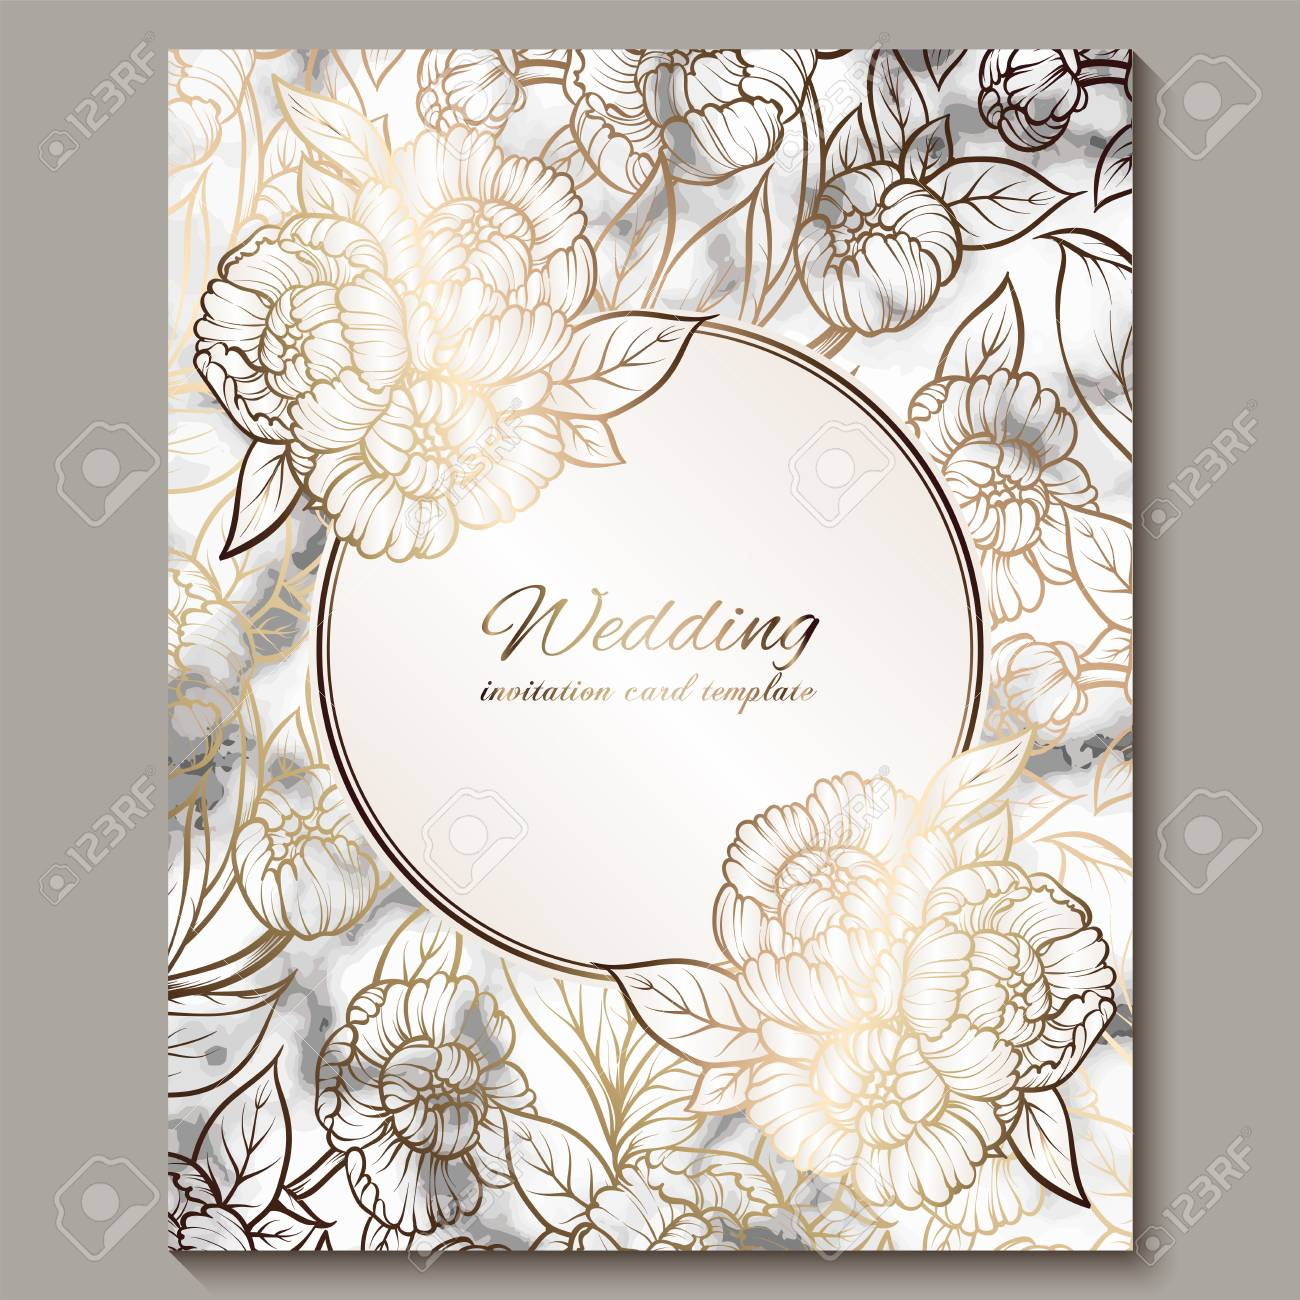 Wedding Invition Cards.Luxury And Elegant Wedding Invitation Cards With Marble Texture